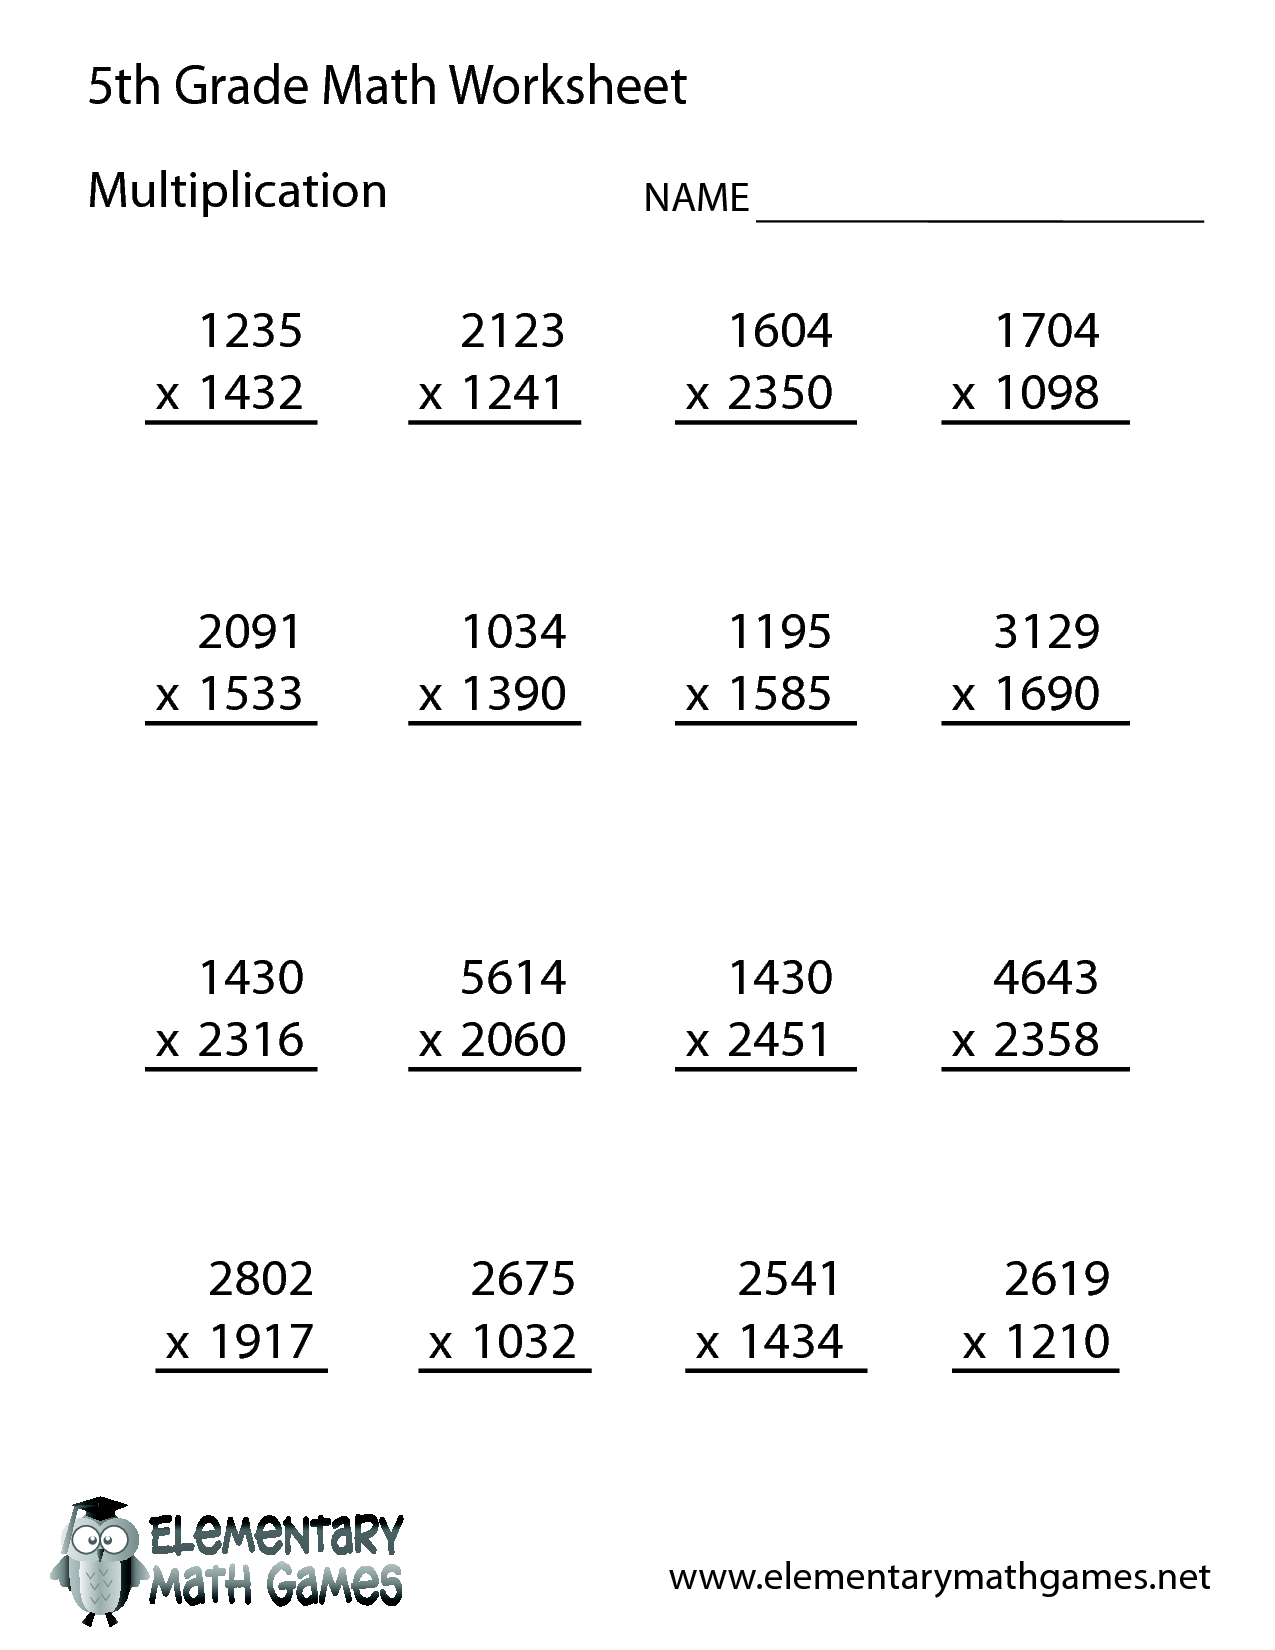 Worksheet 5th Grade Math Multiplication 17 images about javales math worksheets on pinterest multiplication practice 5th grade and drills